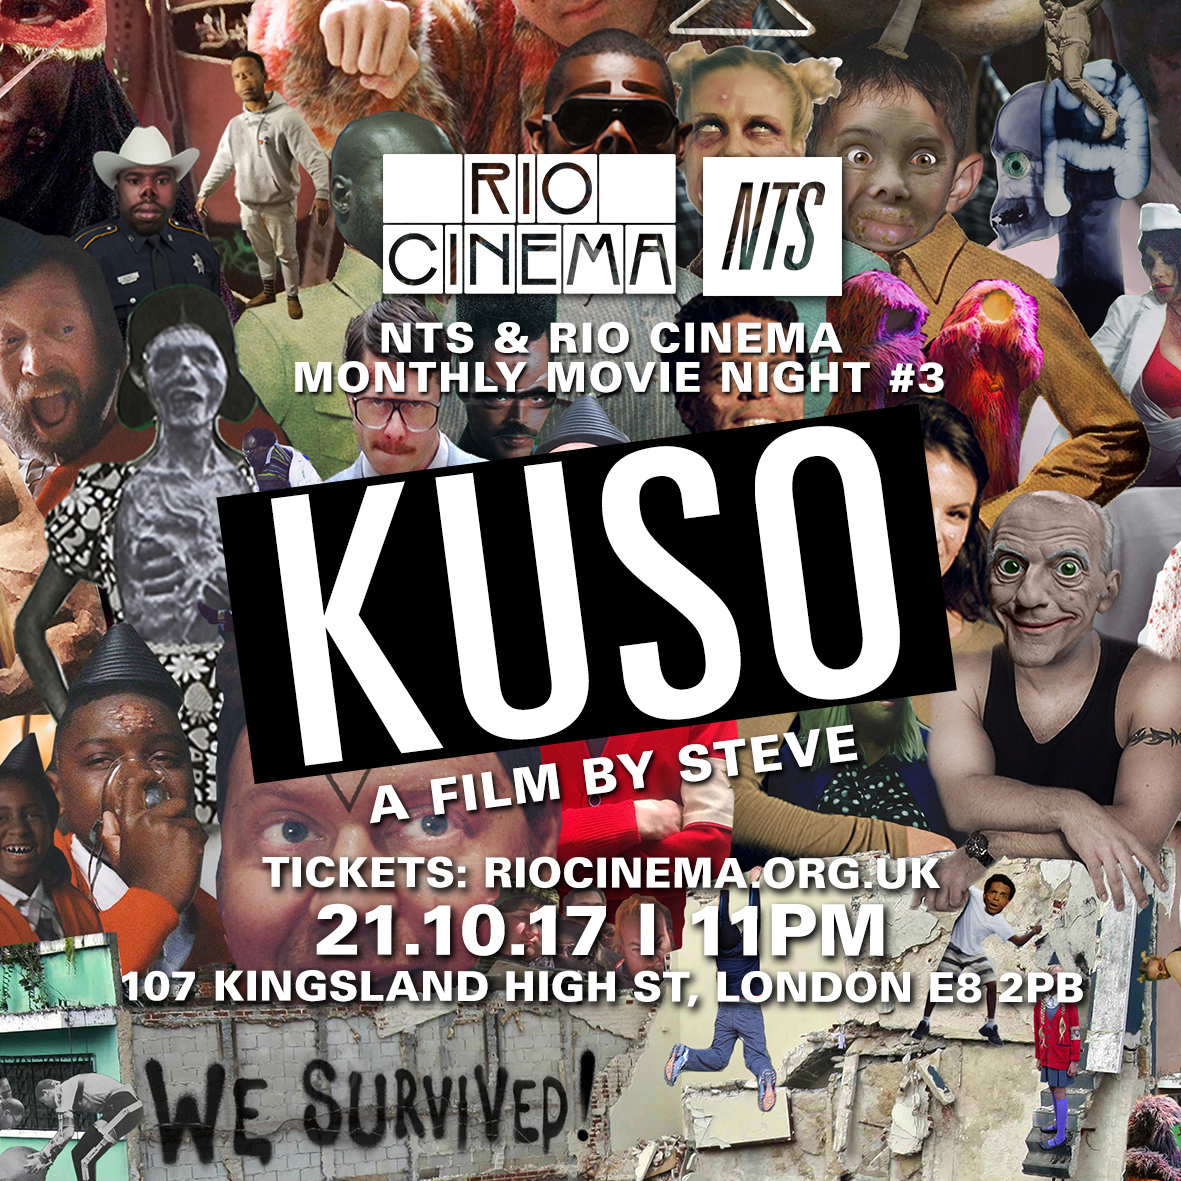 kuso artwork rio cinema square.jpg